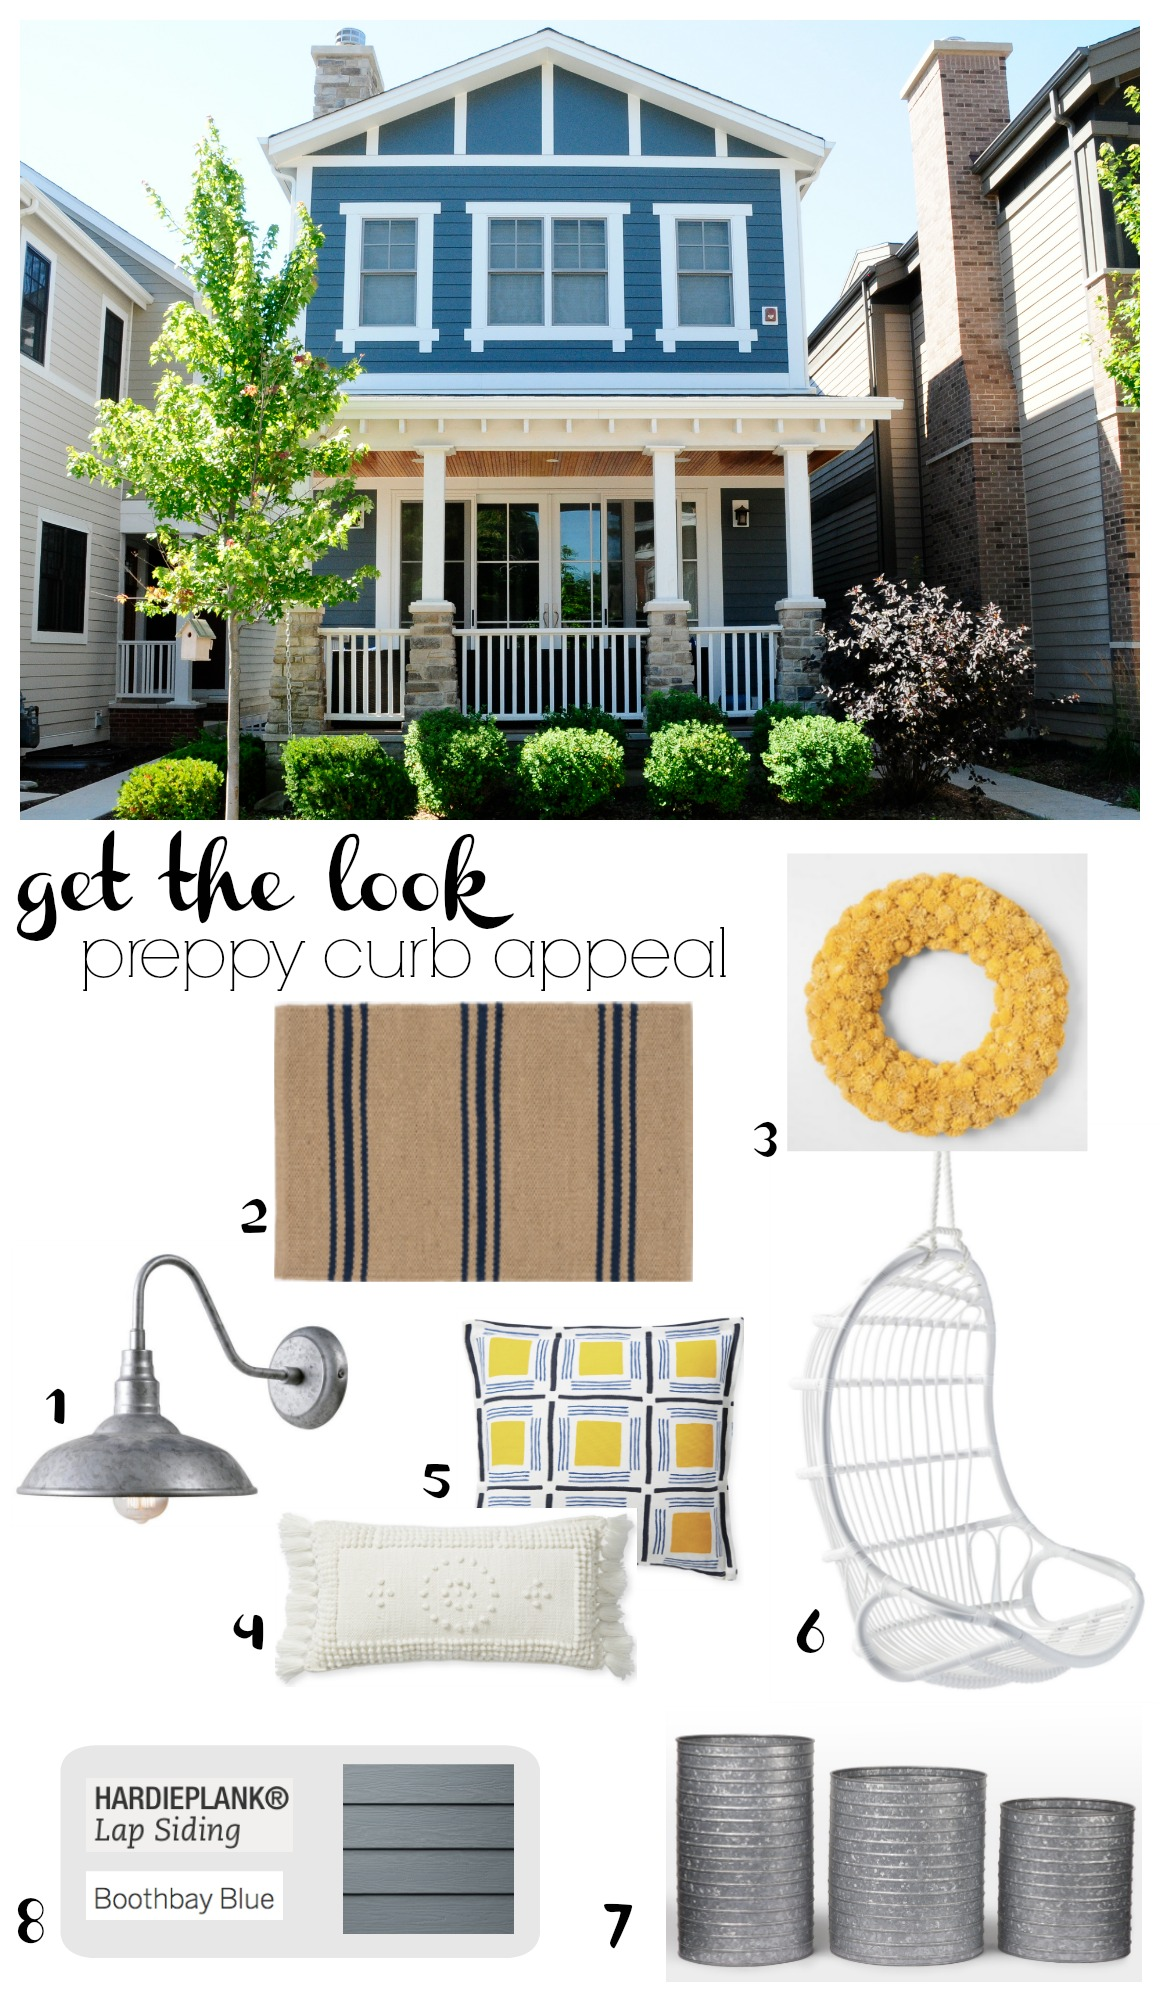 Get the Look- Preppy Curb Appeal-Boothbay Blue